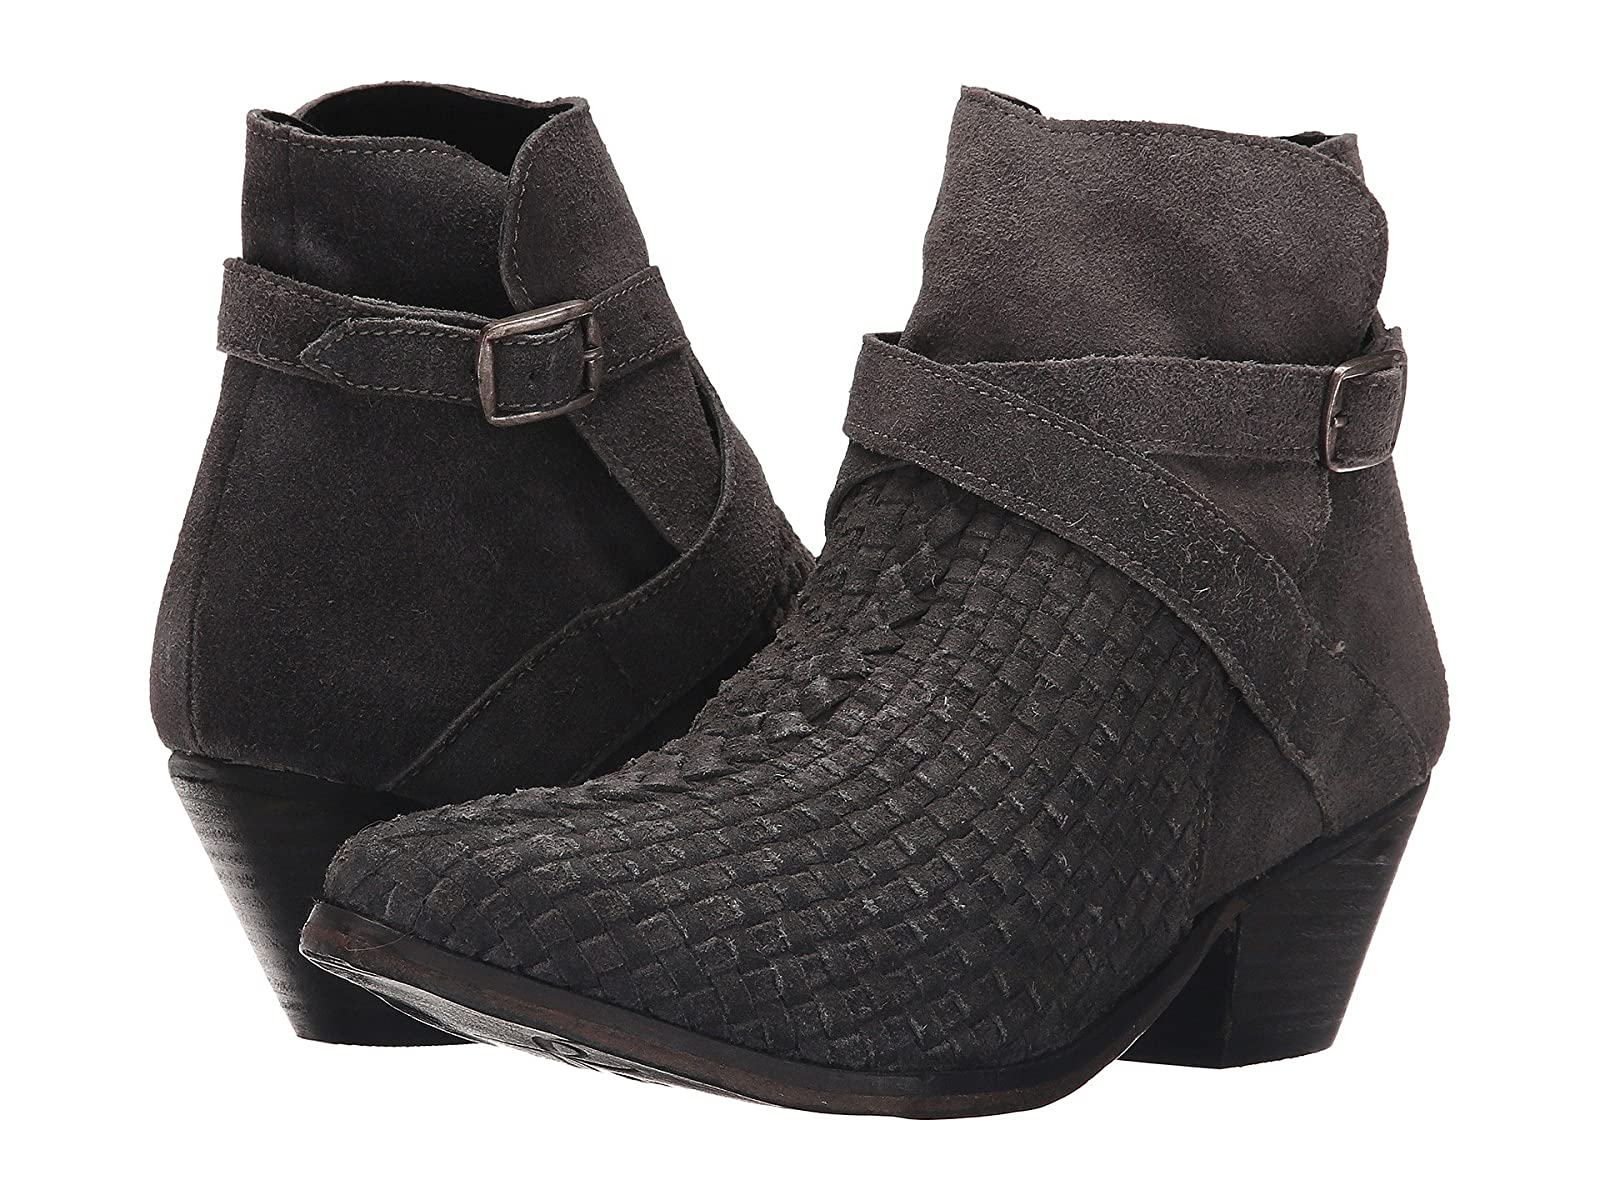 Free People Venture Ankle BootCheap and distinctive eye-catching shoes